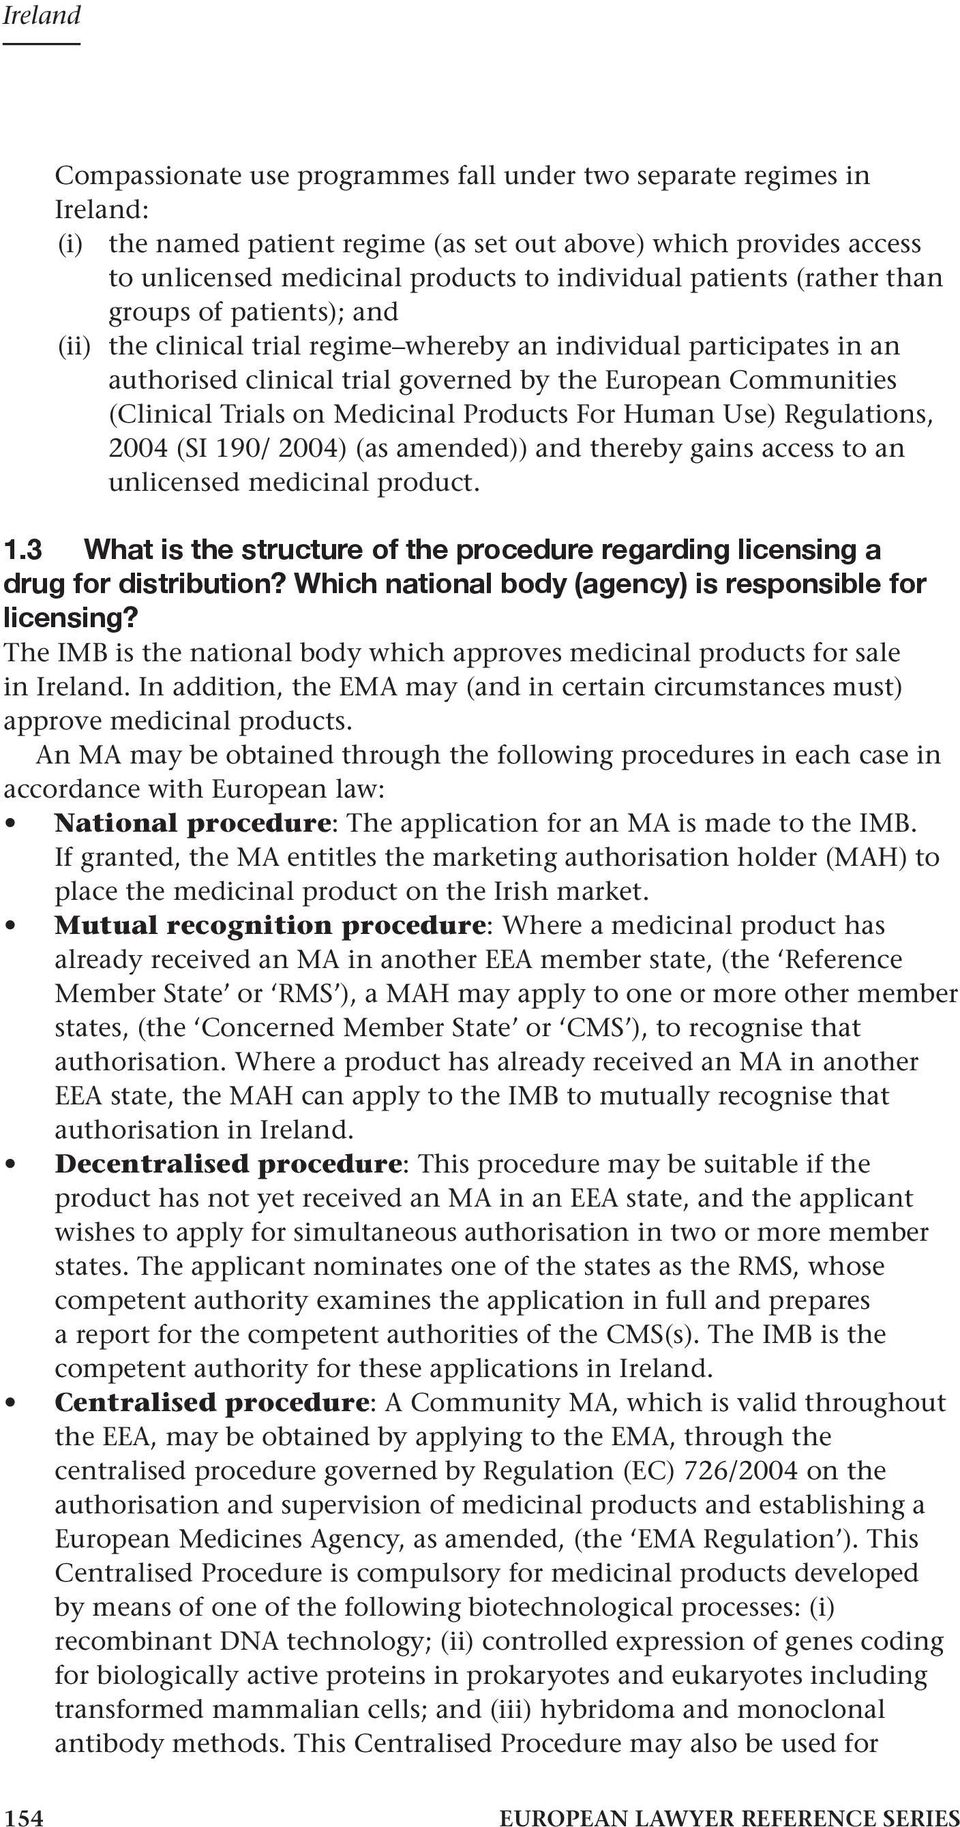 Medicinal Products For Human Use) Regulations, 2004 (SI 190/ 2004) (as amended)) and thereby gains access to an unlicensed medicinal product. 1.3 What is the structure of the procedure regarding licensing a drug for distribution?